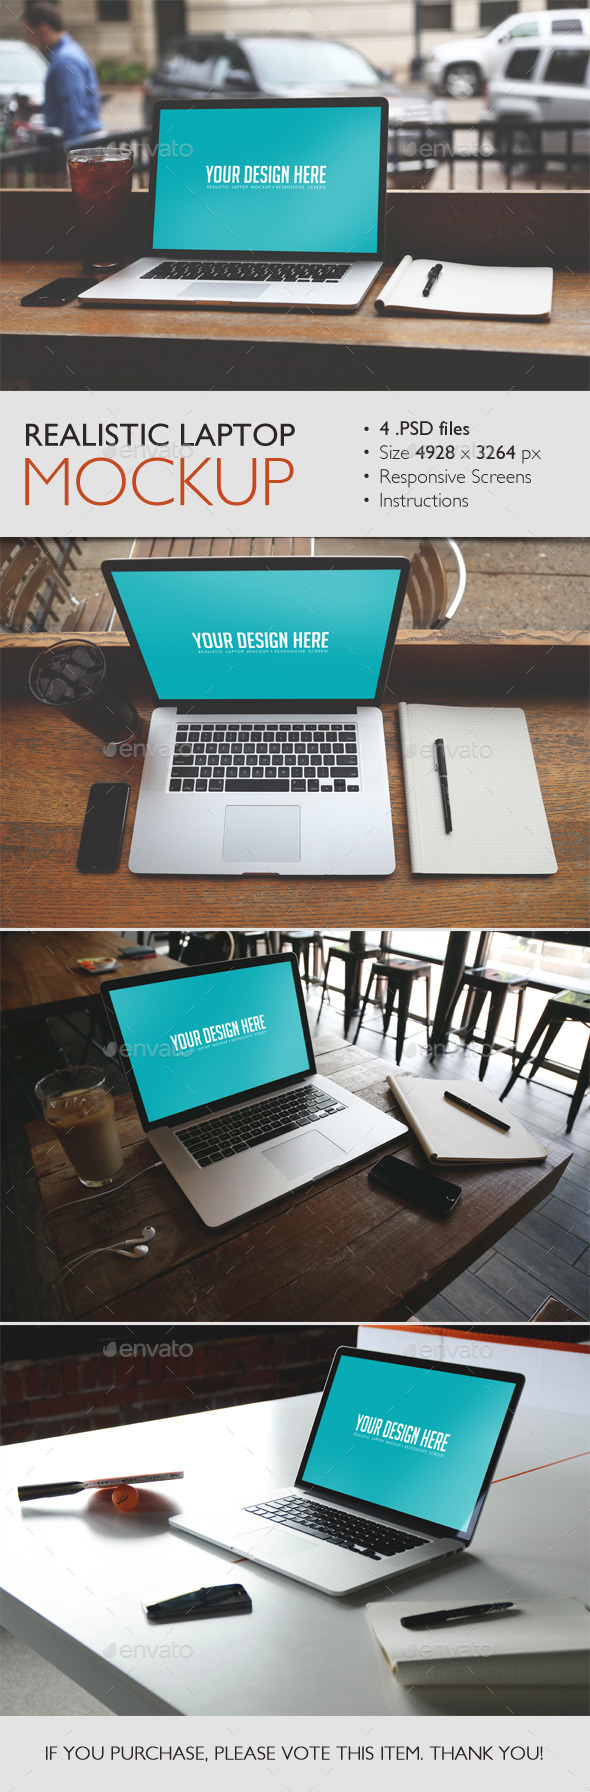 Realistic Laptop Mockup - Displays Product Mock-Ups